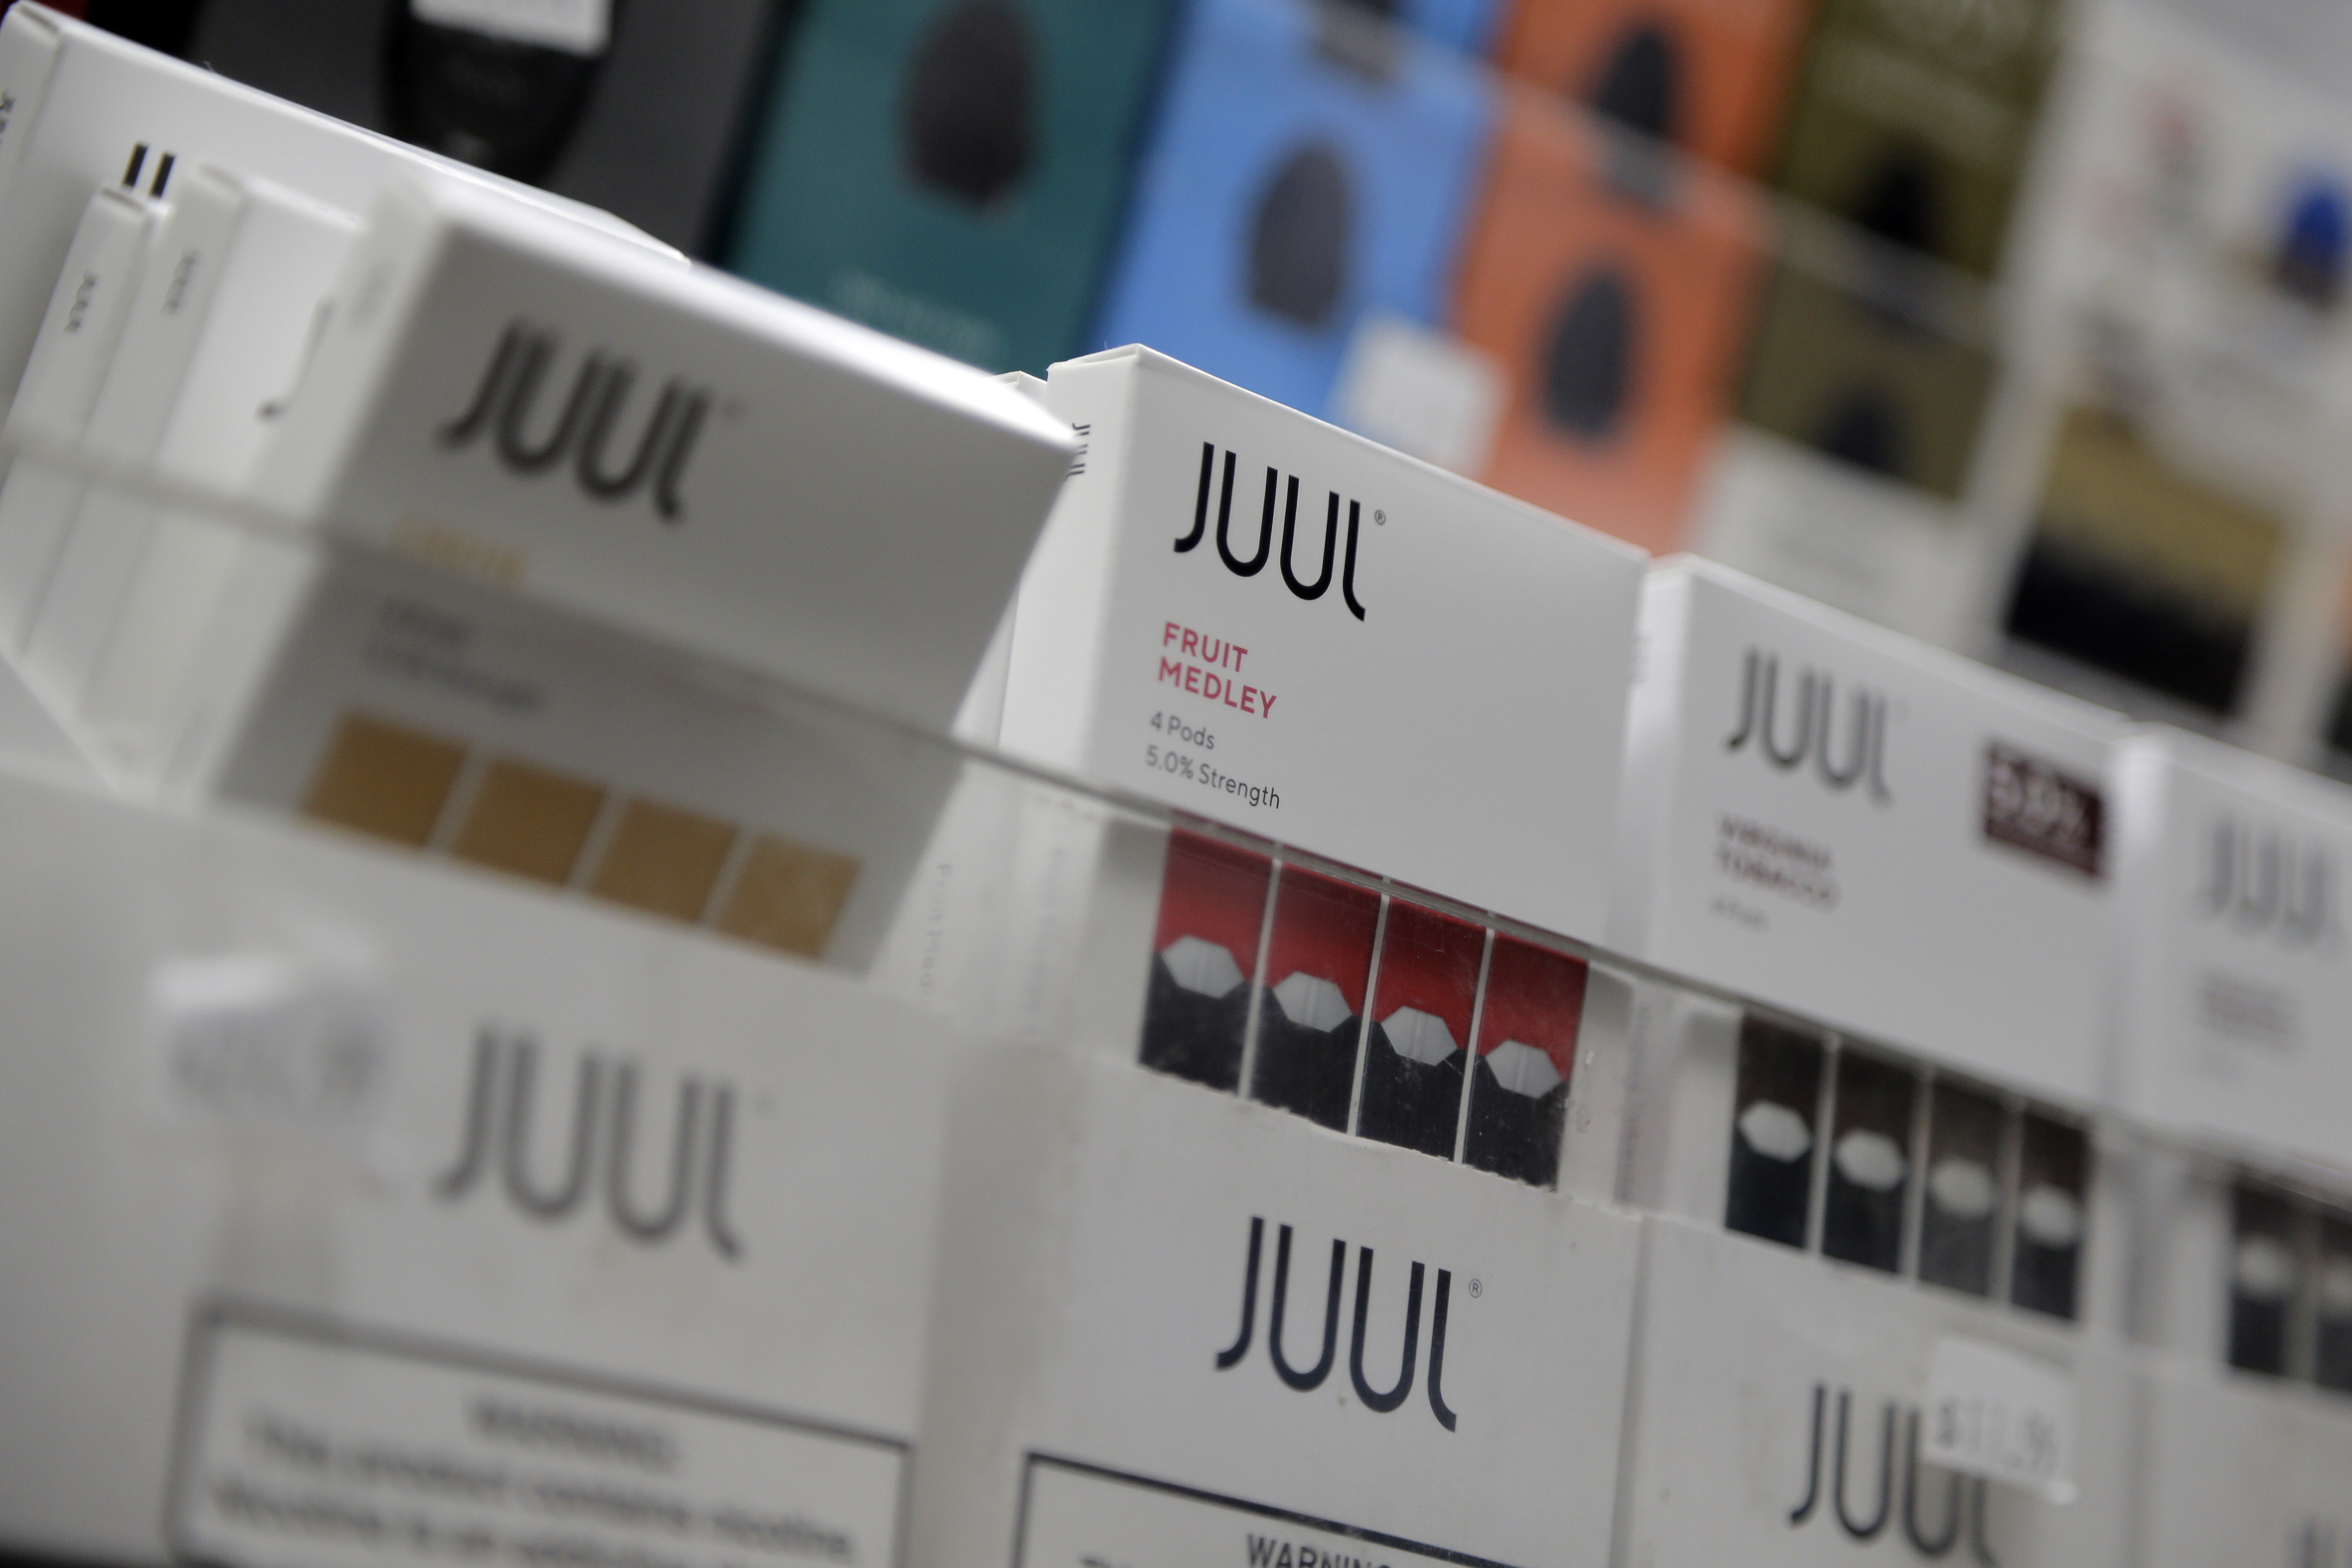 Lawsuit against Juul demands funding of statewide treatment and